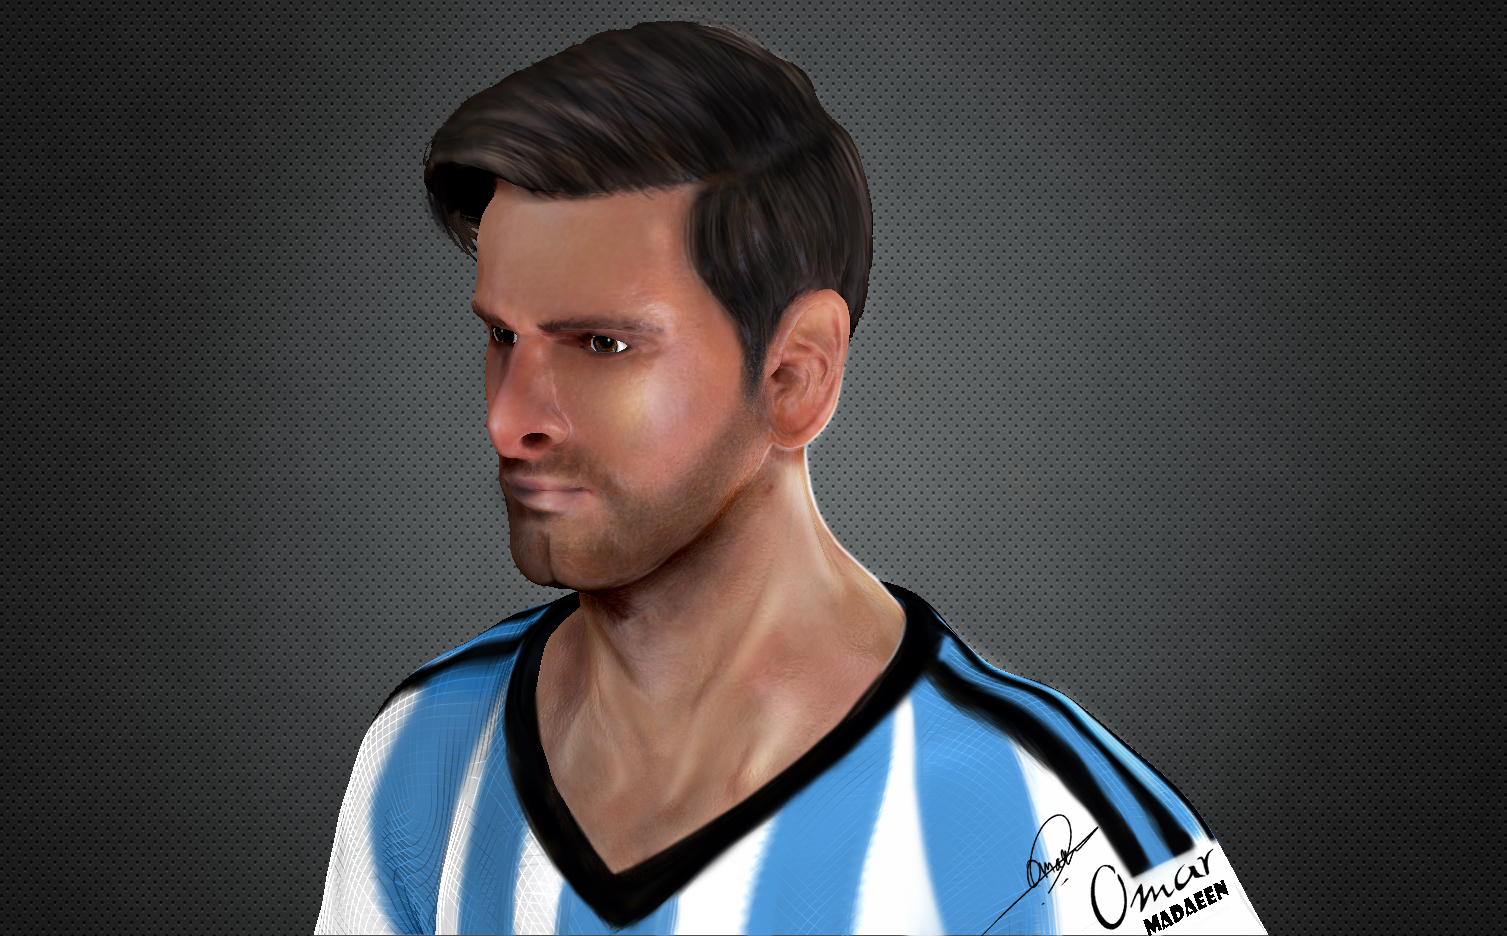 Leo Messi Side view